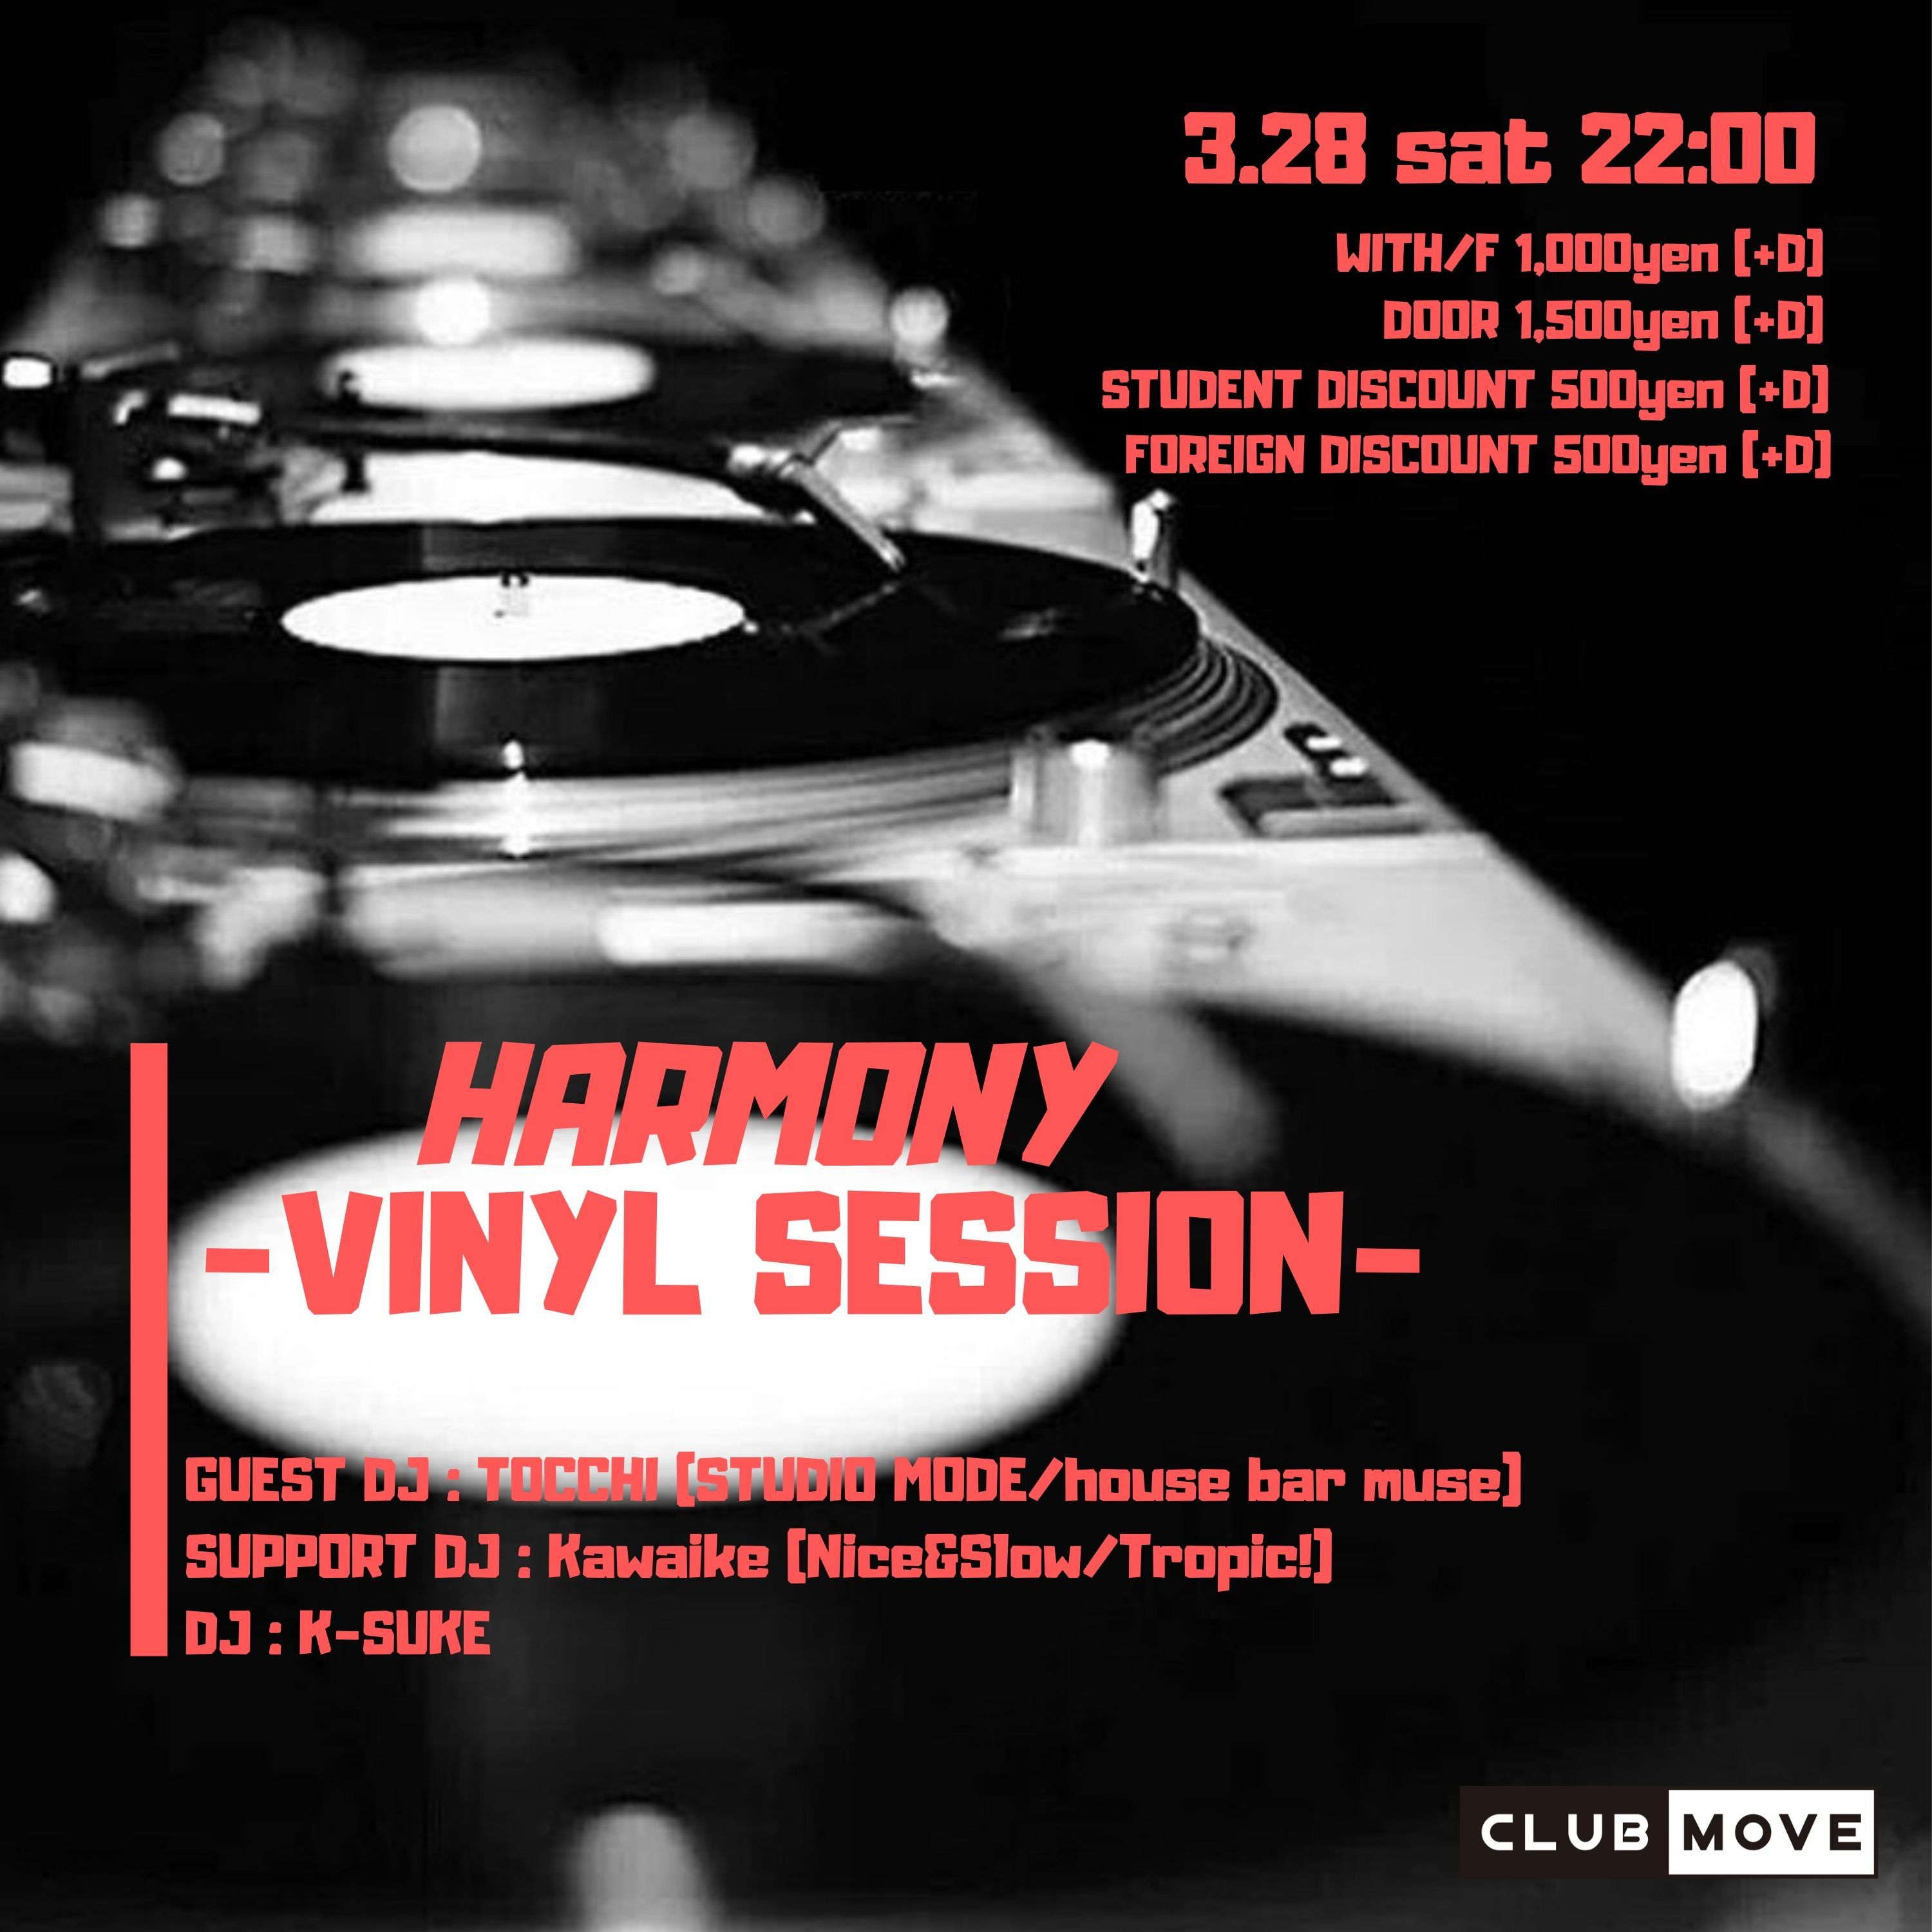 HARMONY -VINYL SESSION-